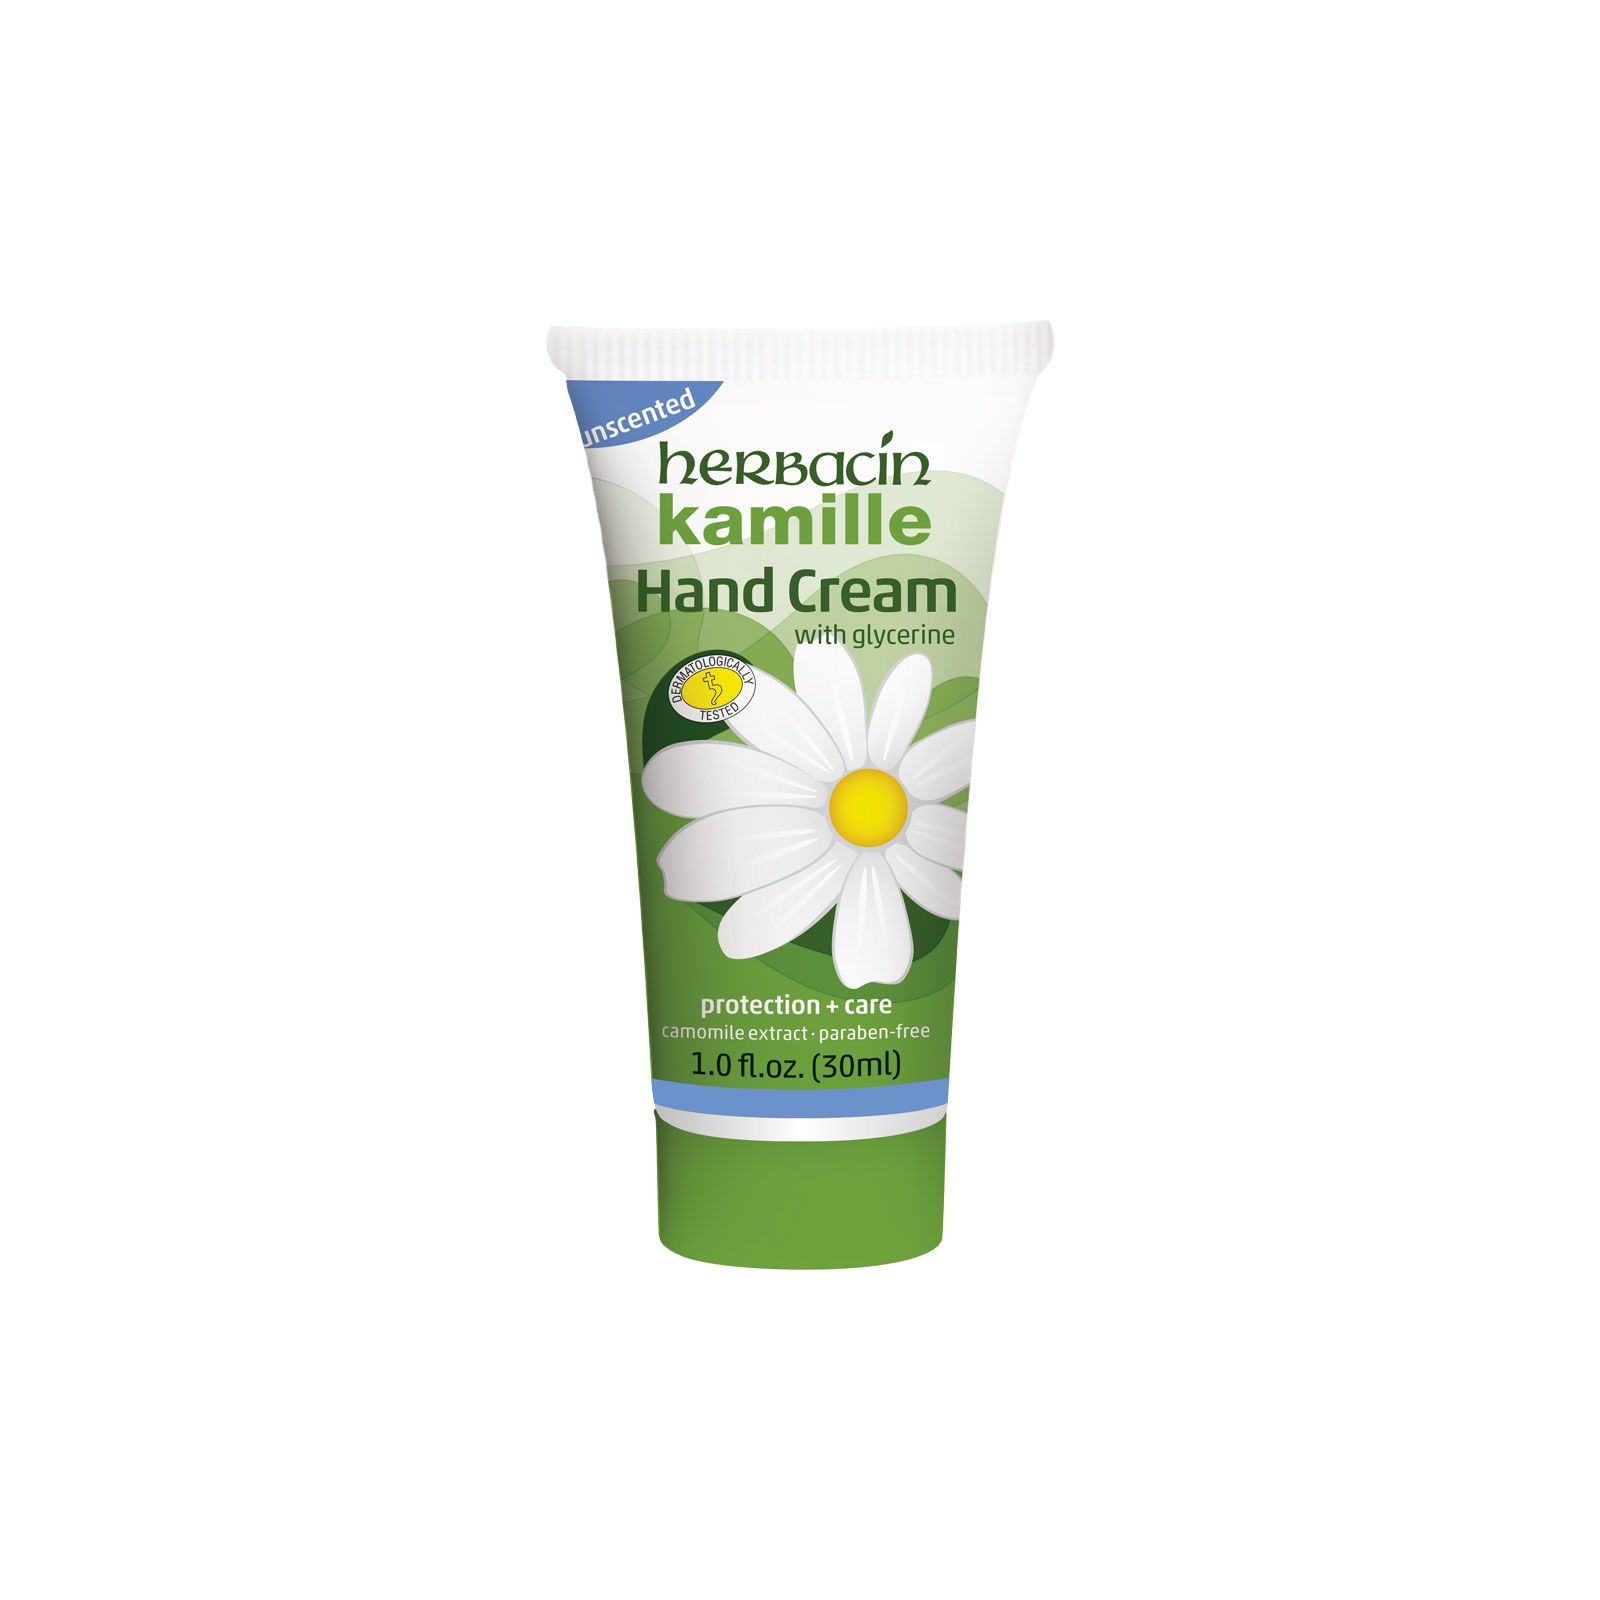 Put Your Make Up On!: Herbacin kamille Hand Cream